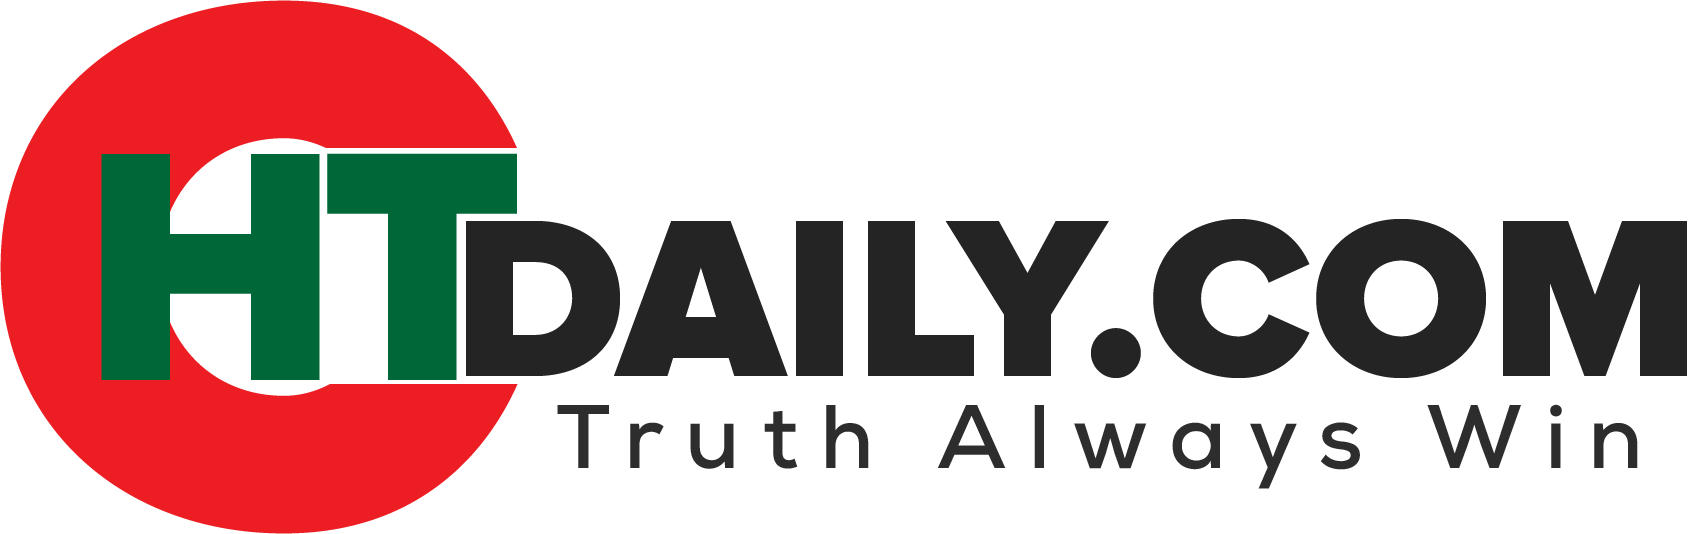 chtdaily logo